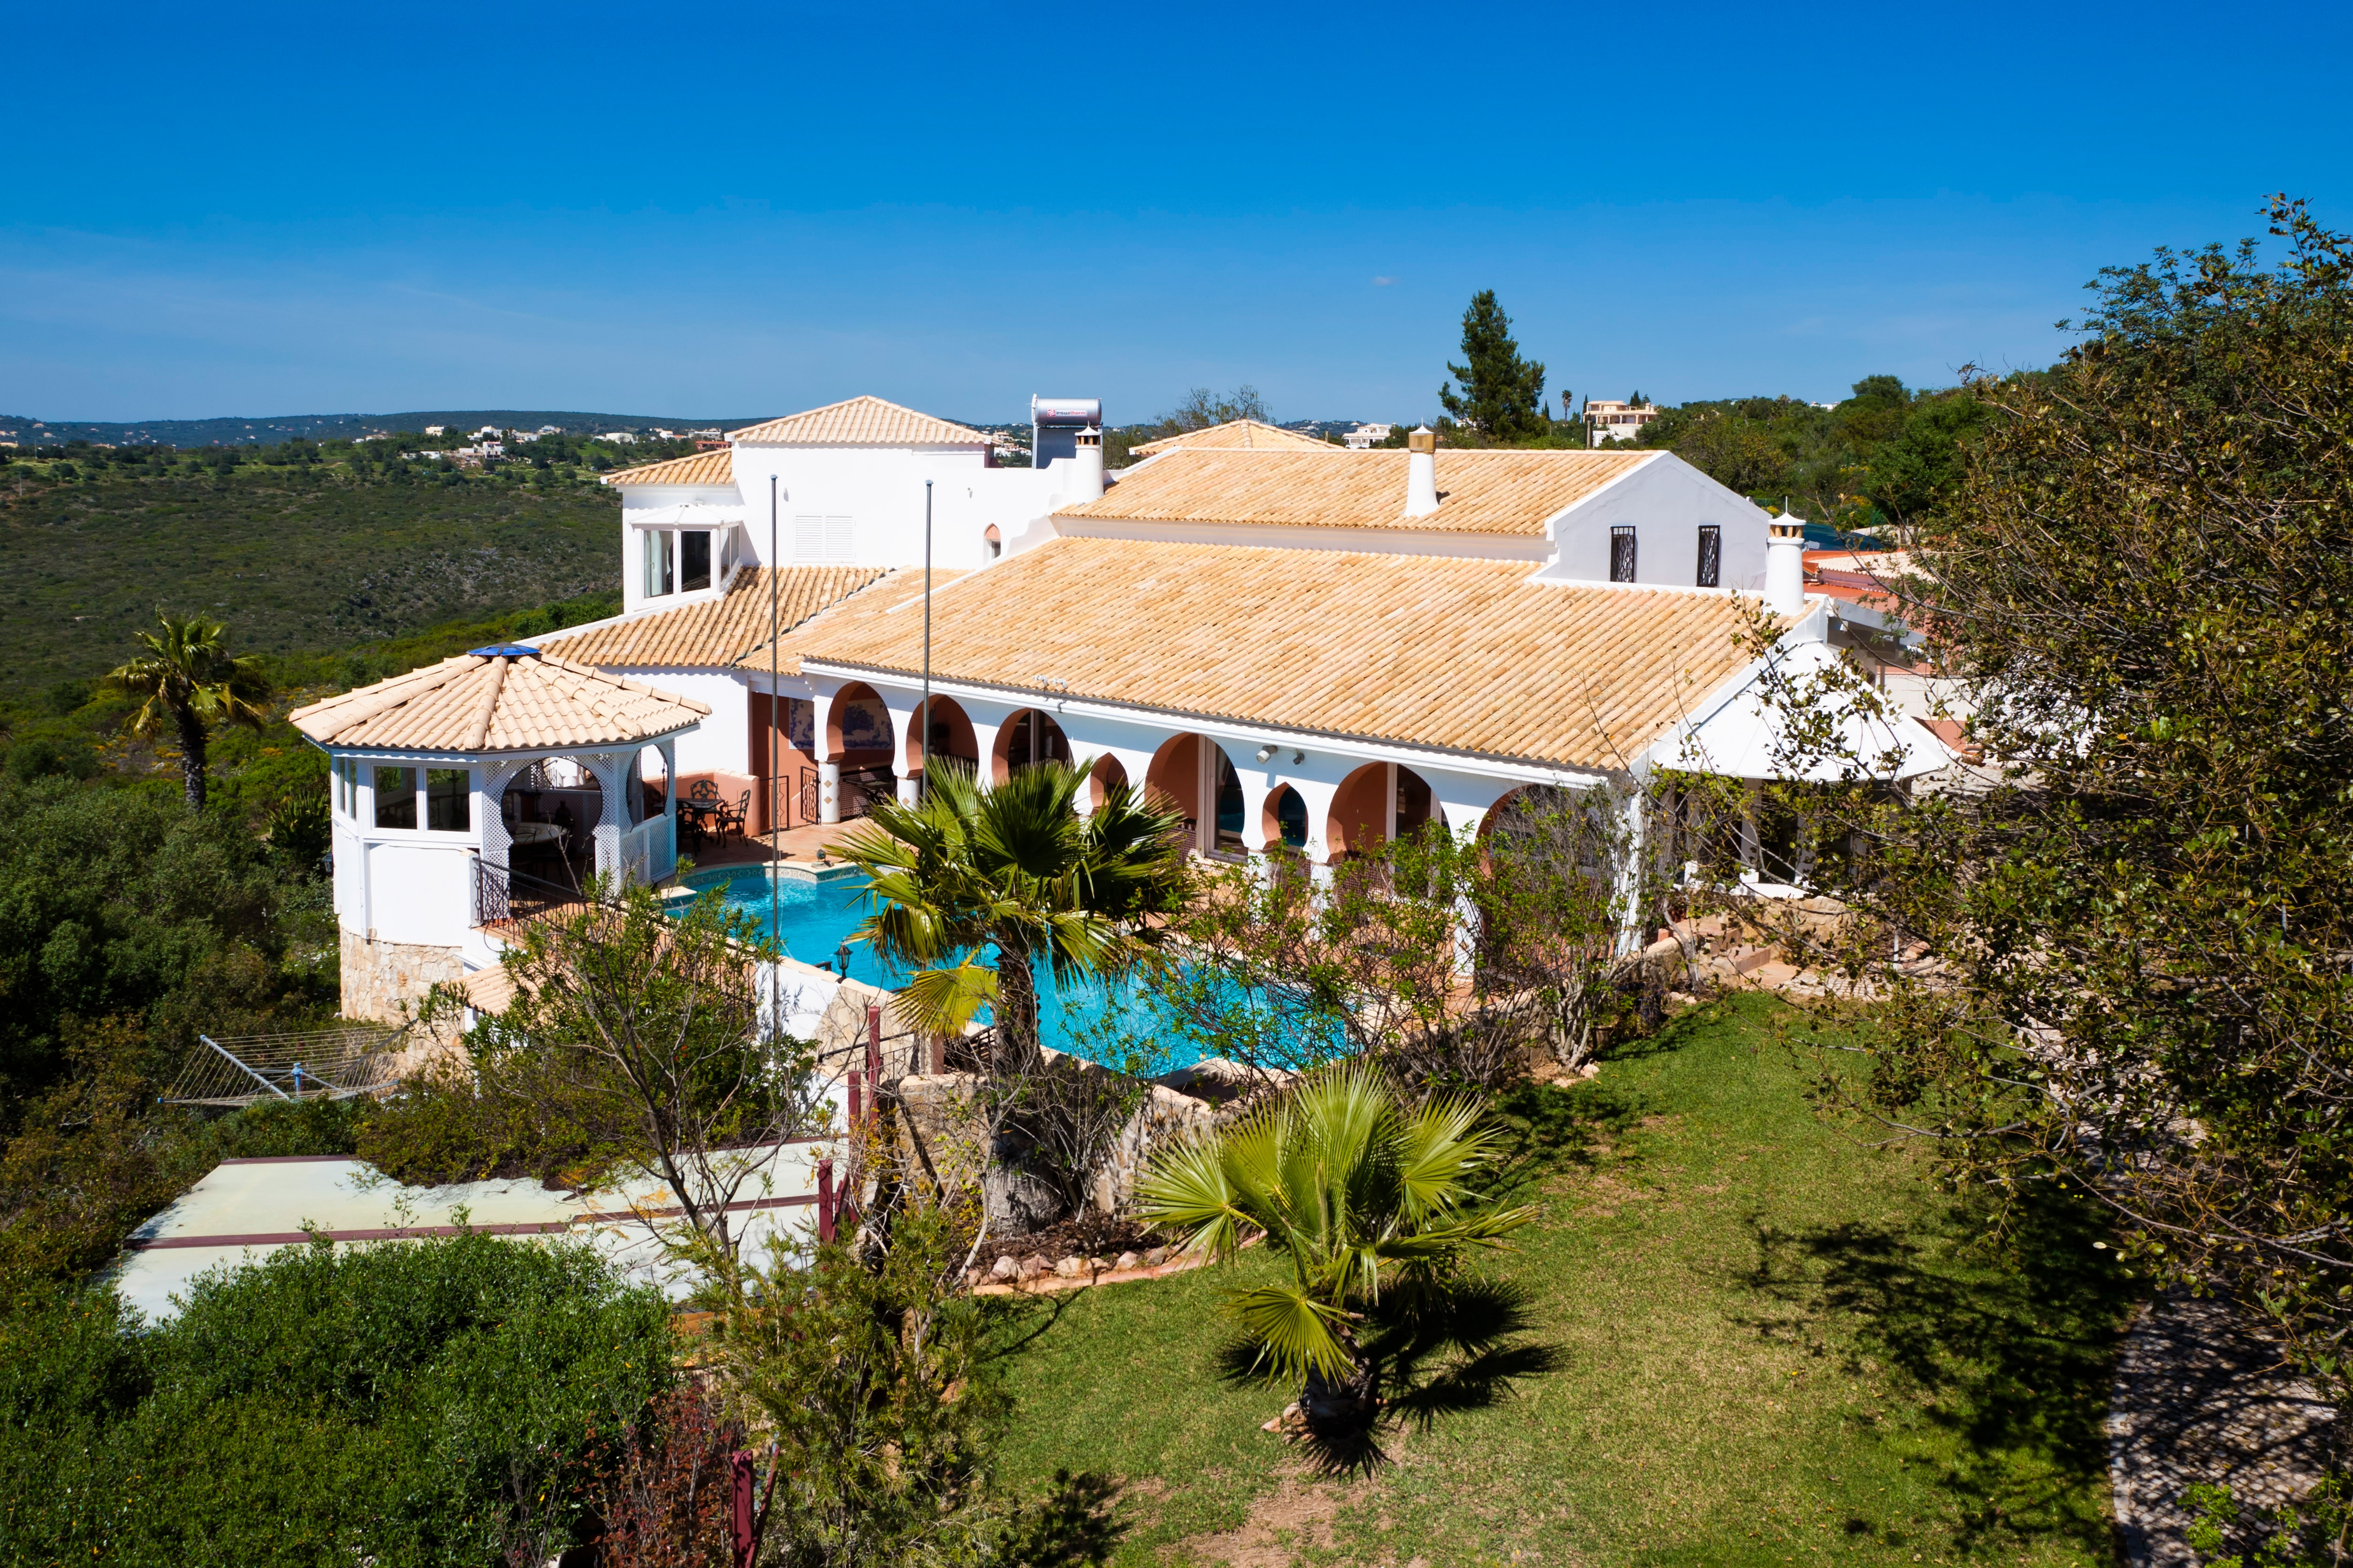 5 Bedroom Luxury Villa with Sea Views, Santa Bárbara Nexe | S1572 This 5 bedroom villa has a heated pool, jacuzzi, sauna and lovely sea views. It is located in Santa Bárbara de Nexe, close to all amenities and only a short drive to beaches.